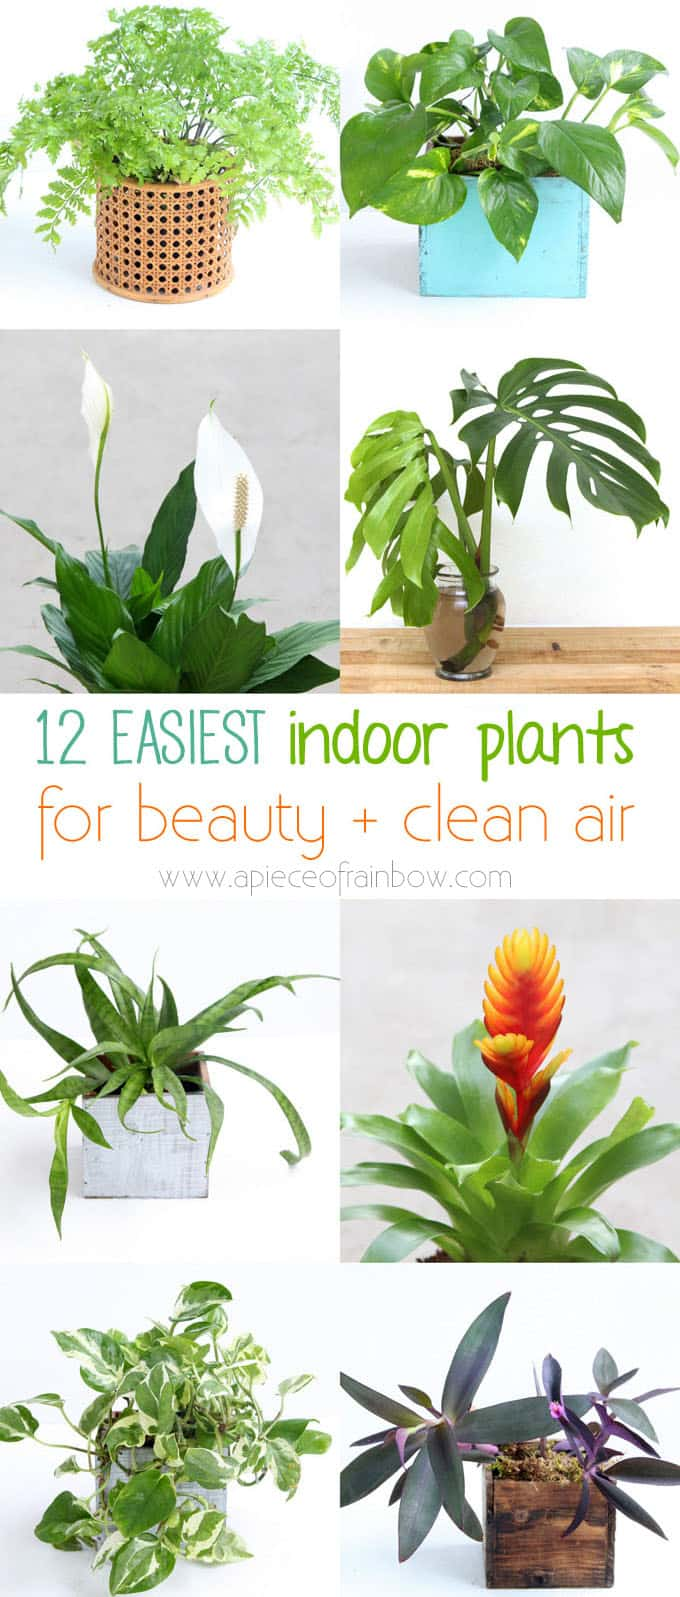 12 Easy Indoor Plants for Beauty + Clean Air - A Piece Of Rainbow